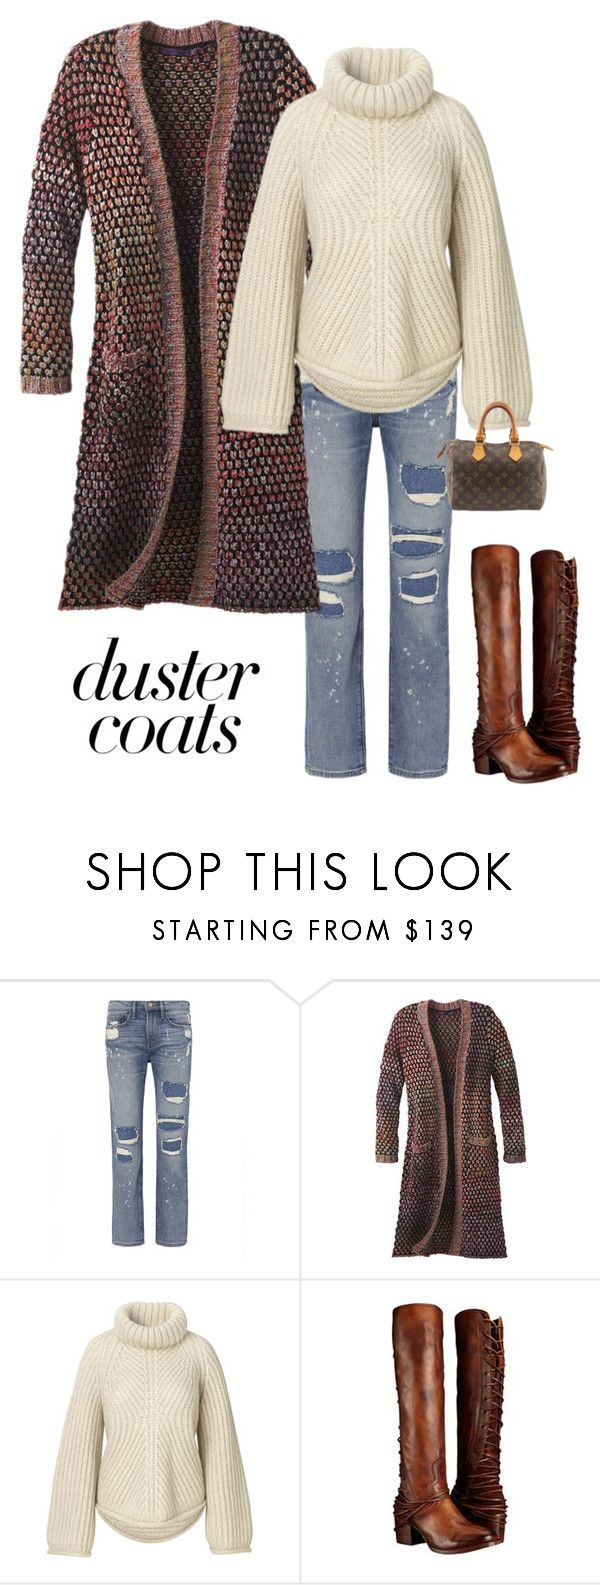 """""""Fall Fashion"""" by kotnourka ❤ liked on Polyvore featuring Frame, prAna, Steven by Steve Madden and Louis Vuitton"""